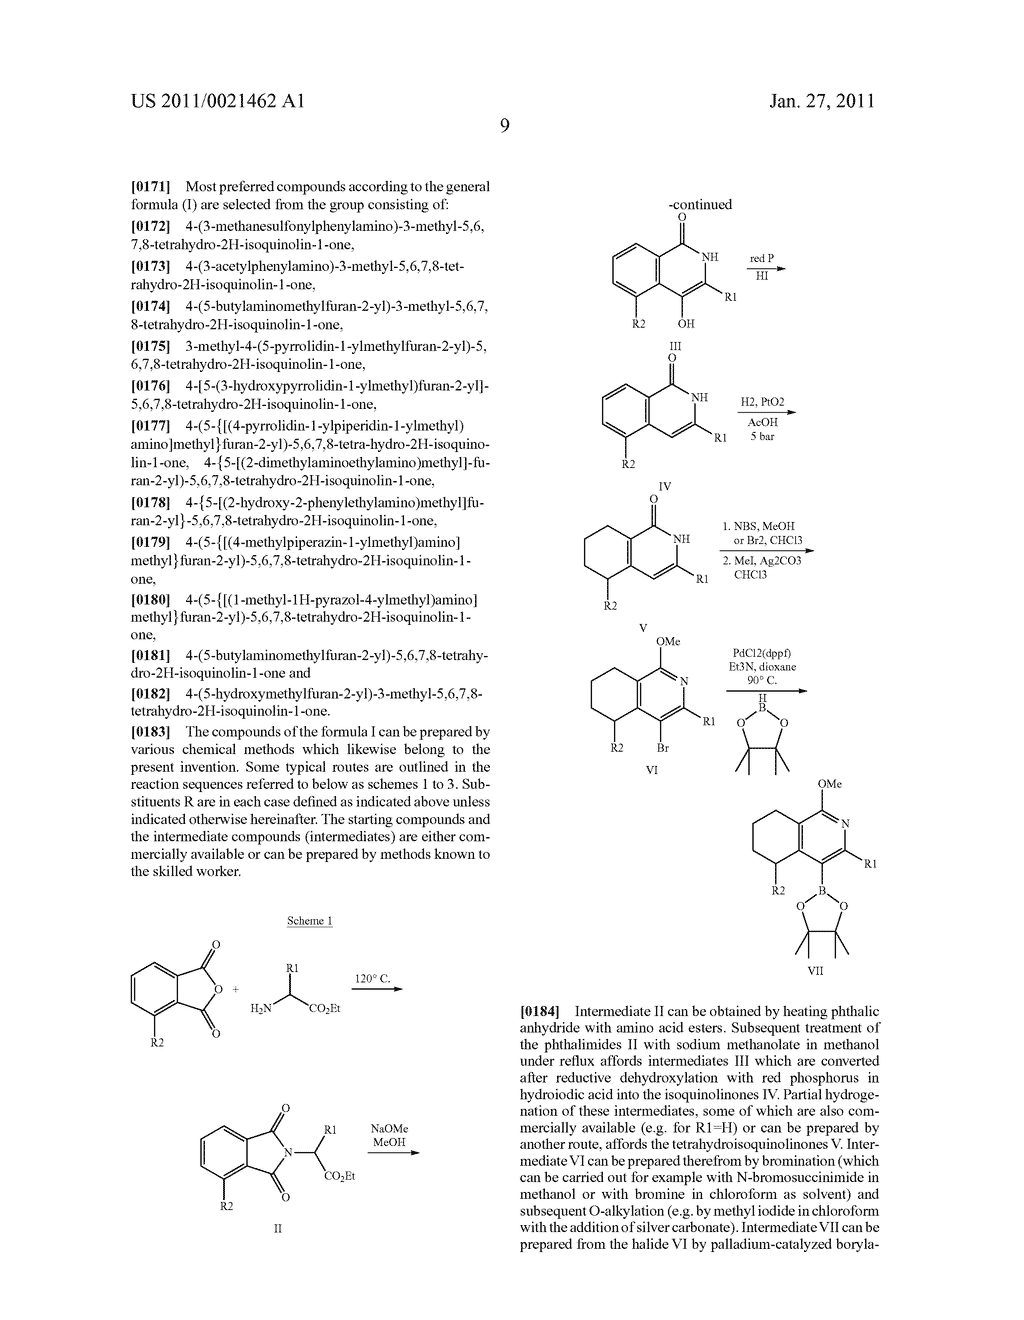 SUBSTITUTED TETRAHYDRO-2H-ISOQUINOLIN-1-ONE DERIVATIVES, AND METHODS FOR THE PRODUCTION AND USE THEREOF - diagram, schematic, and image 10